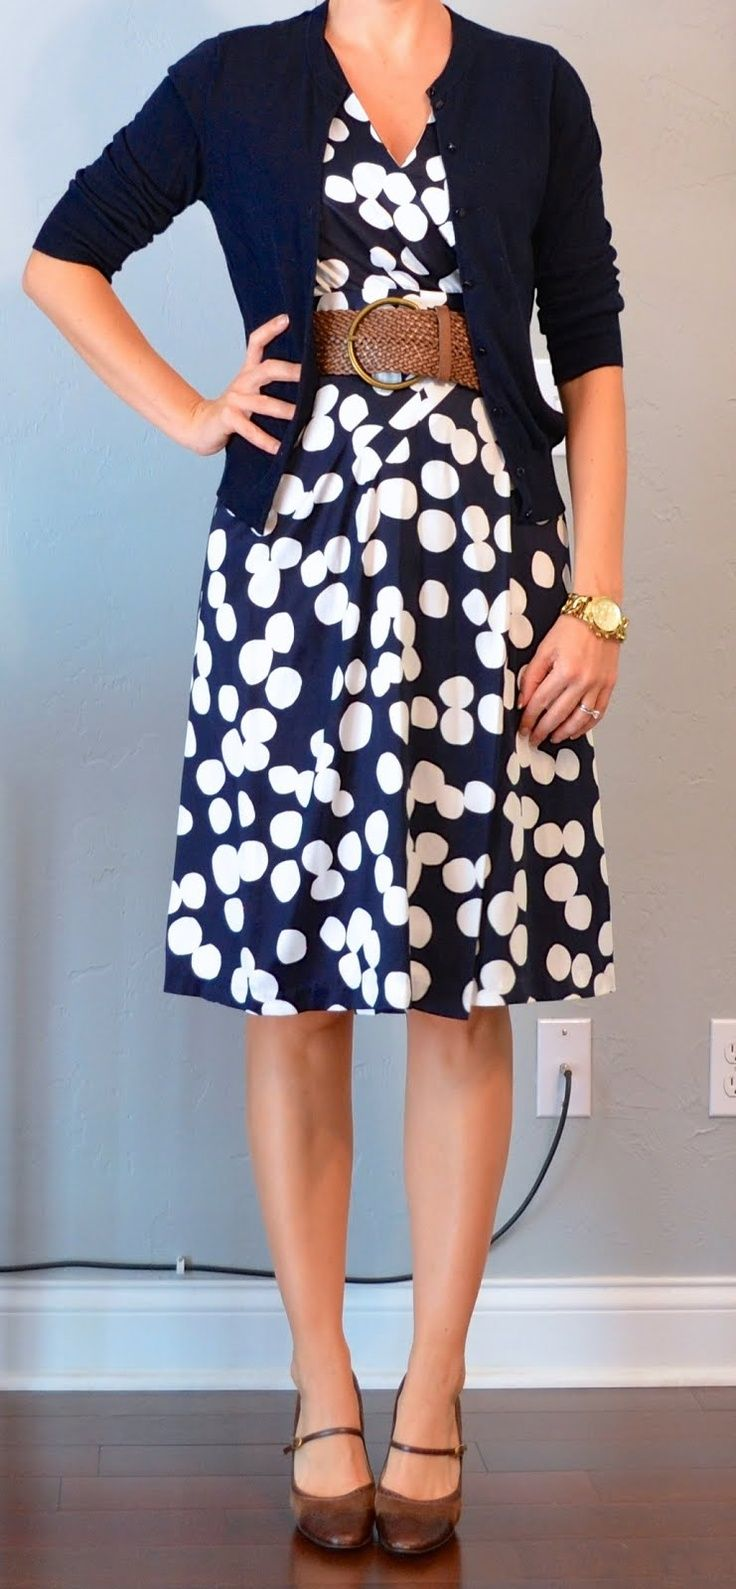 I'm not a huge fan of dresses, but this is cute. I'd totally wear it. :)